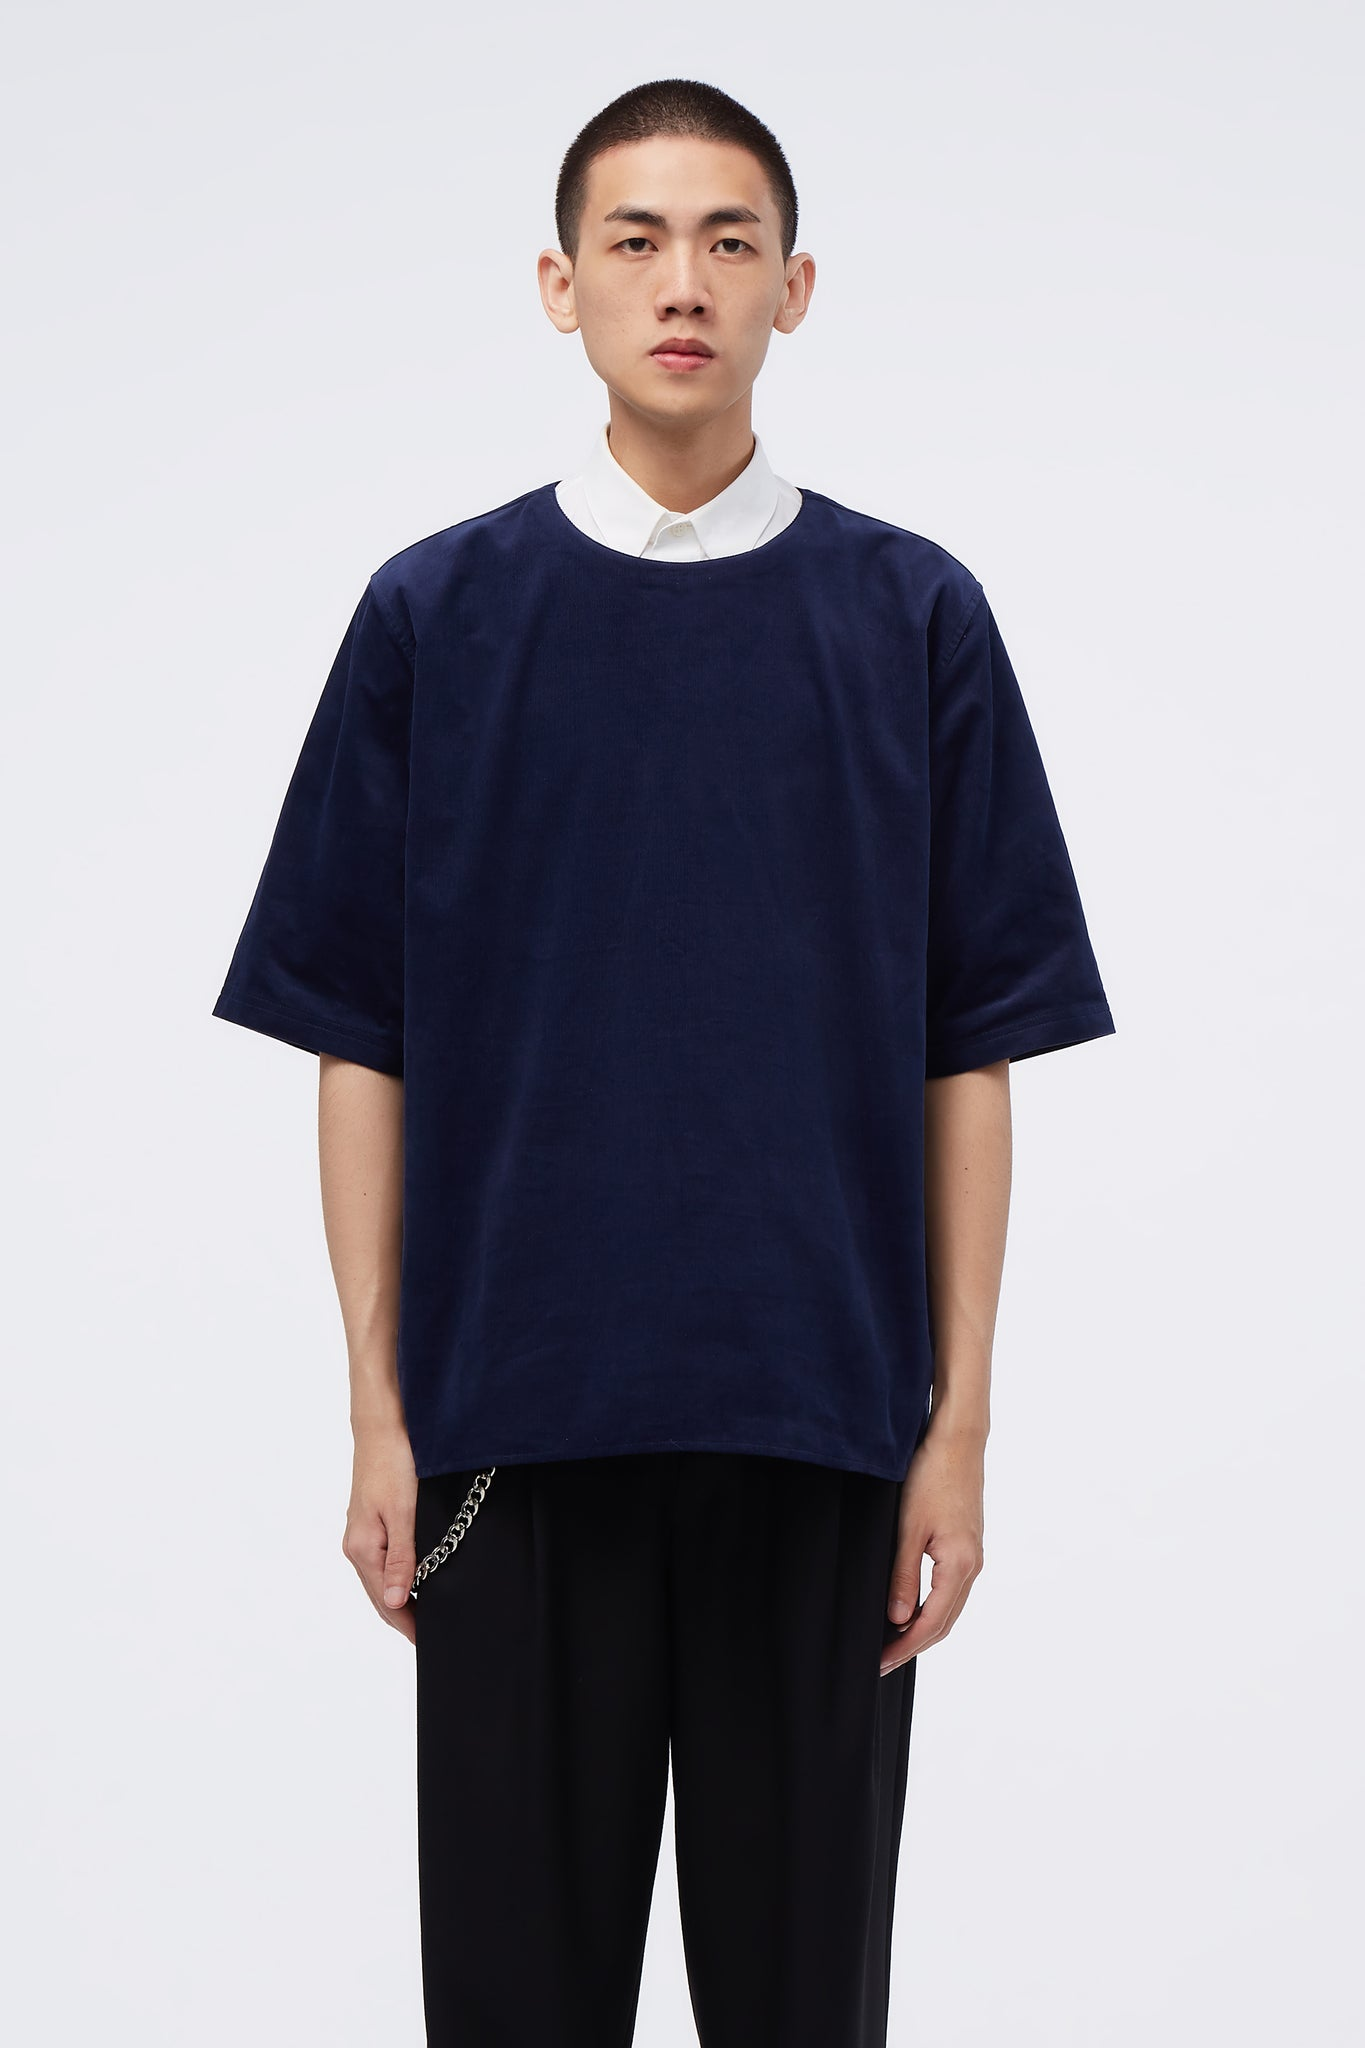 Pullover Relaxed T-shirt Midnight Navy corduroy